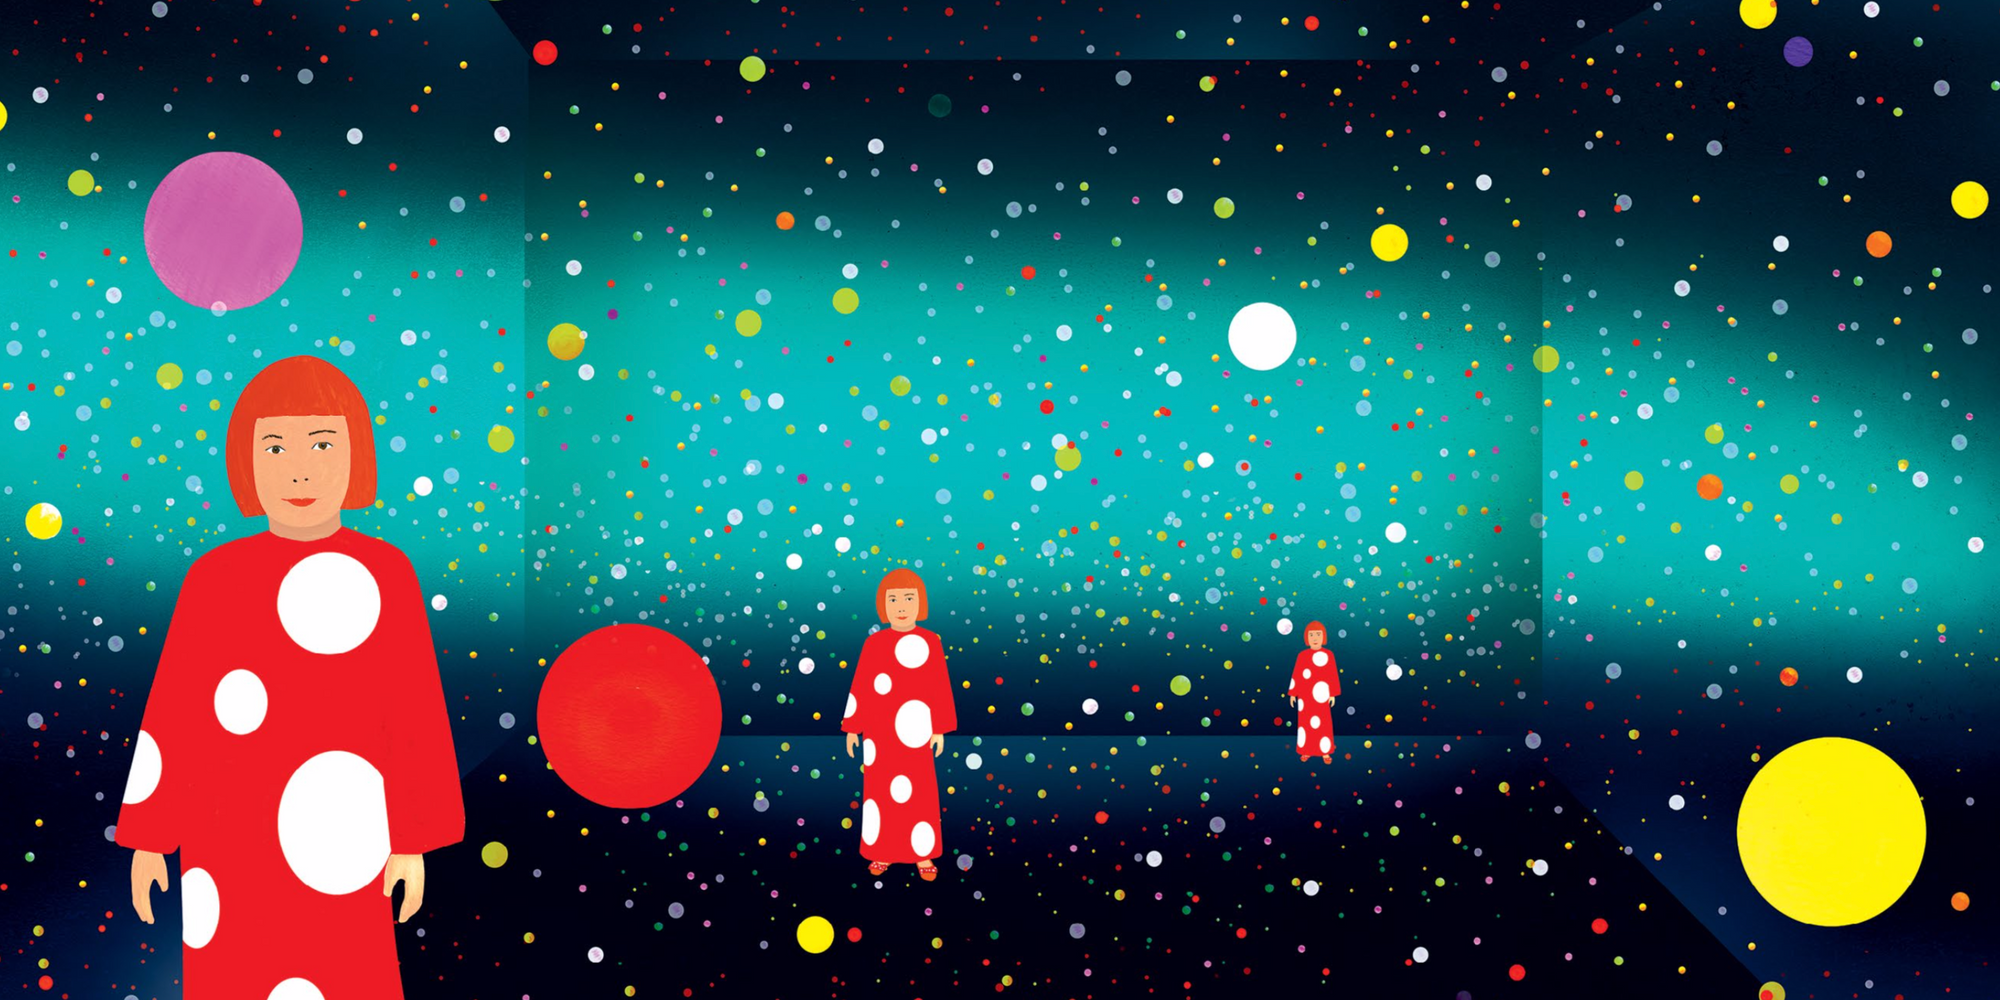 Cover art from Yayoi Kusama: From Here to Infinity by Sarah Suzuki. Published by The Museum of Modern Art